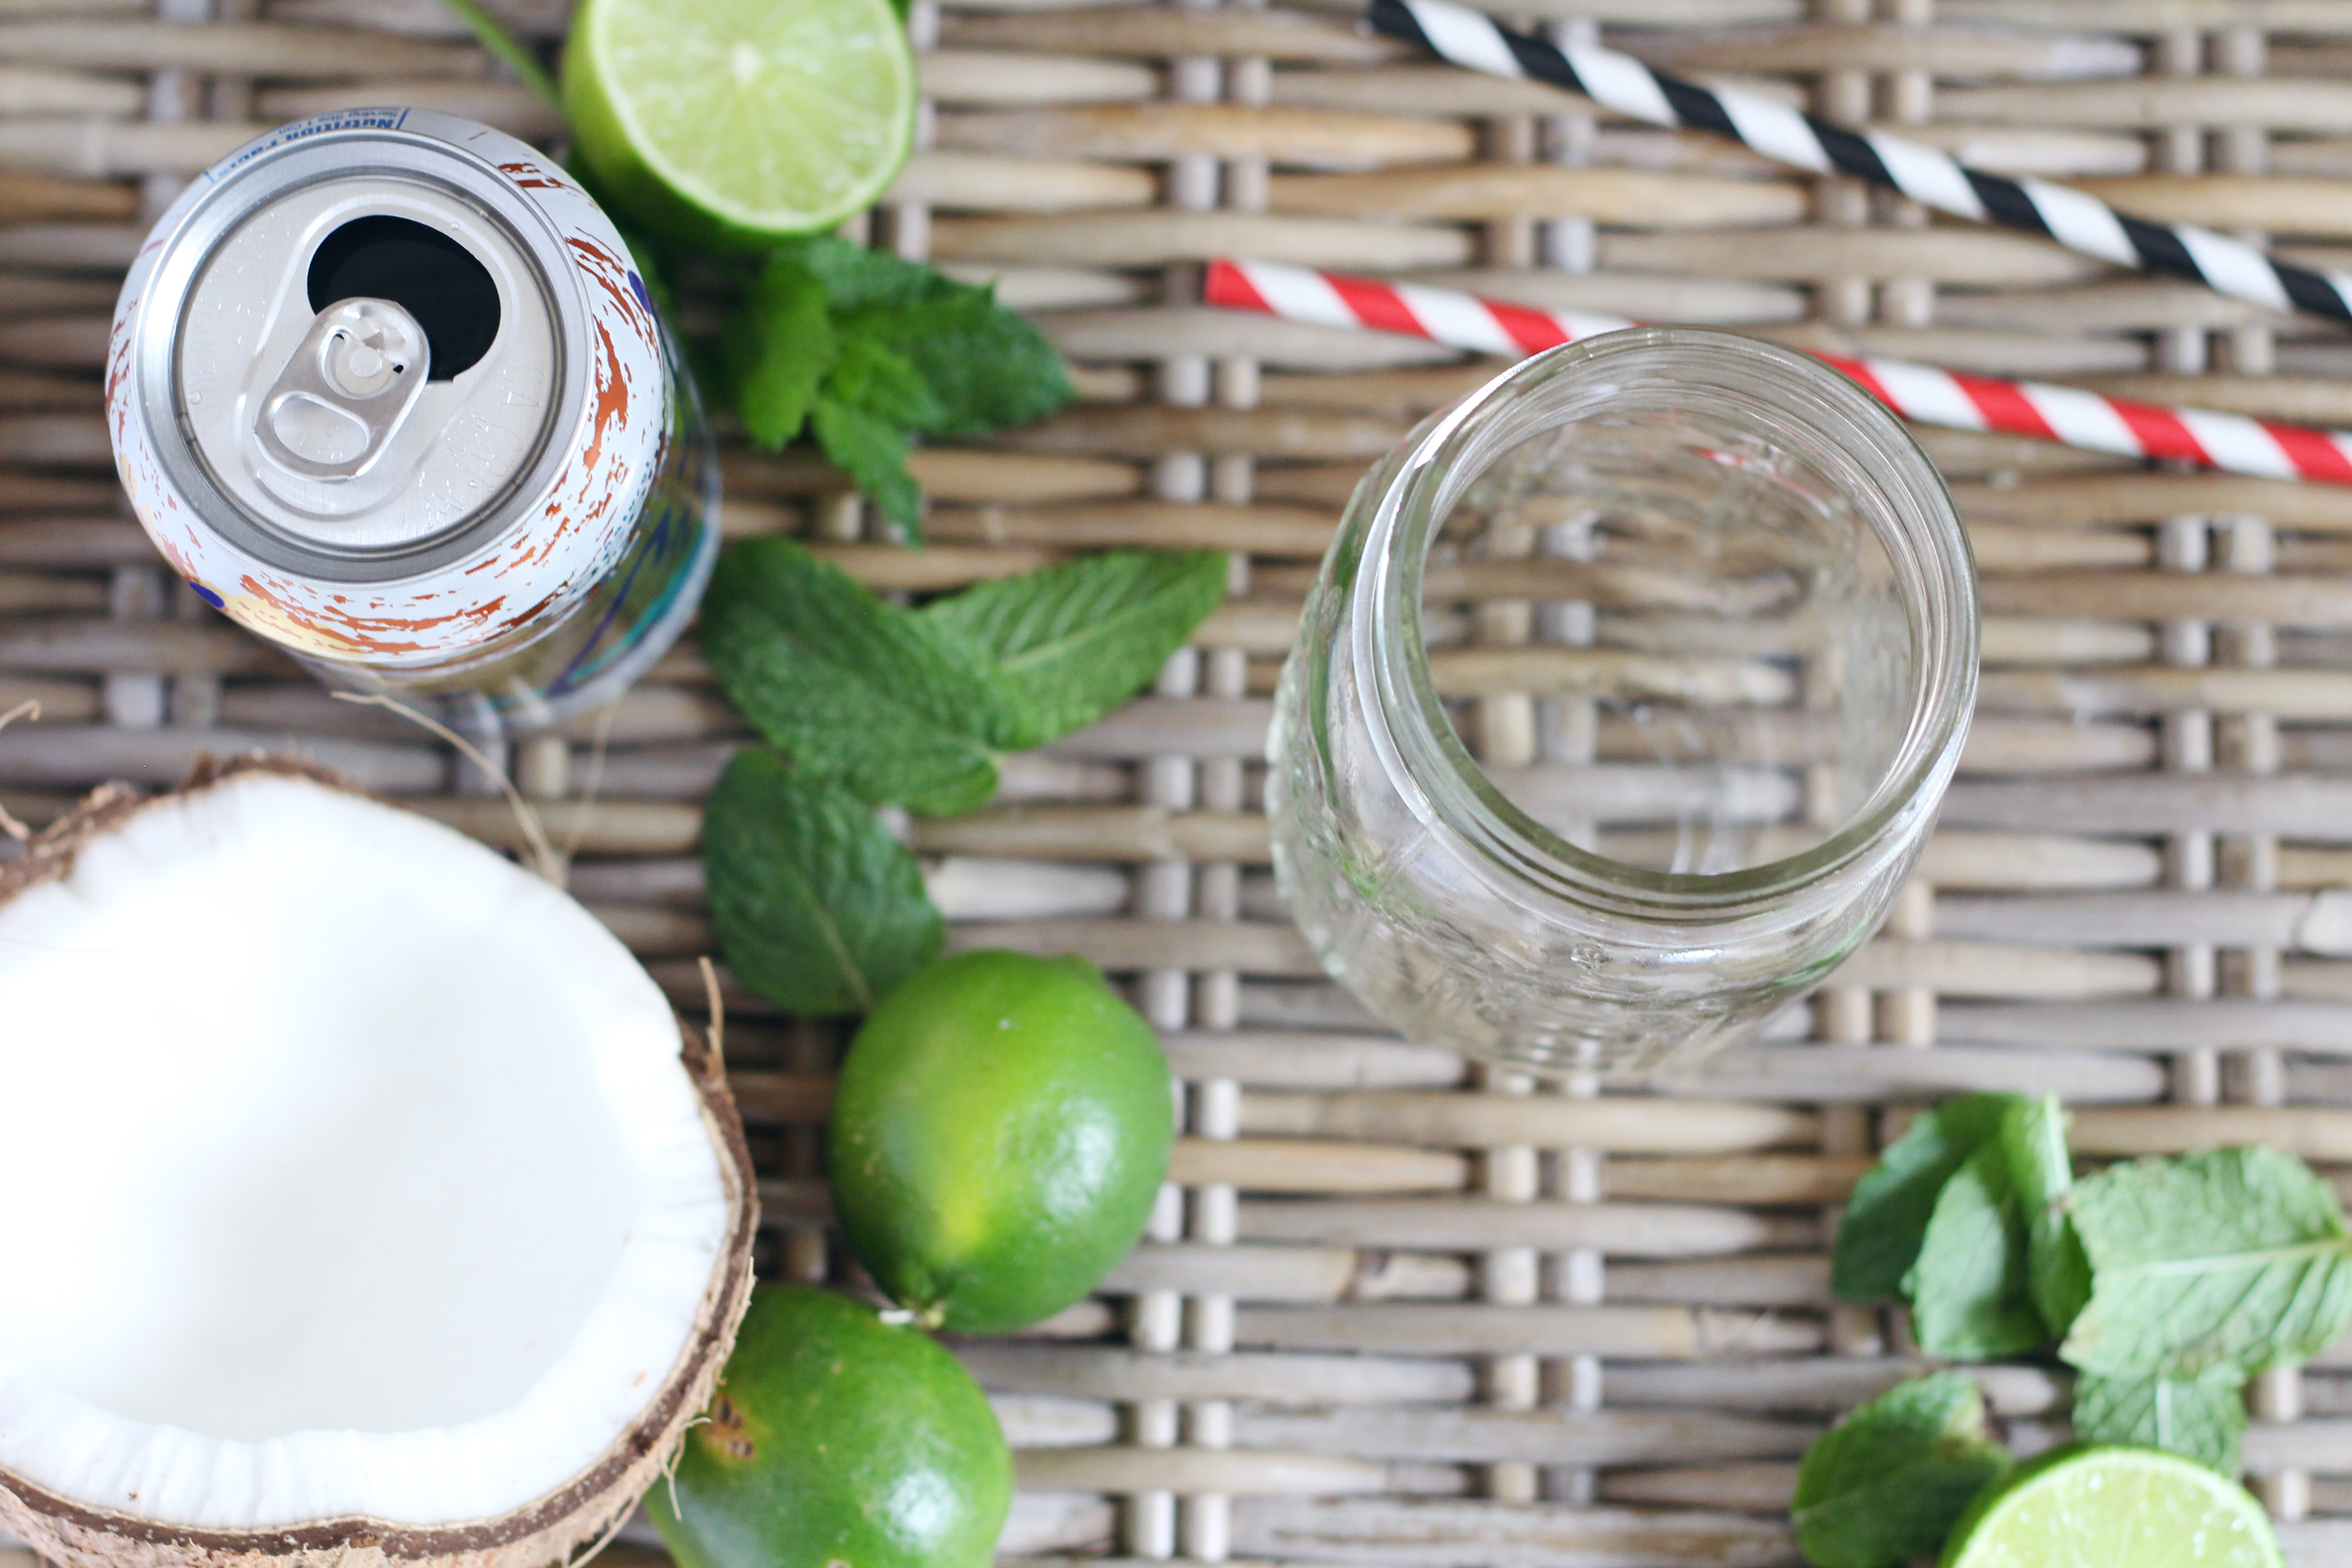 La Croix Mocktails are perfect for summer parties. Our favorite is the coconut flavor!